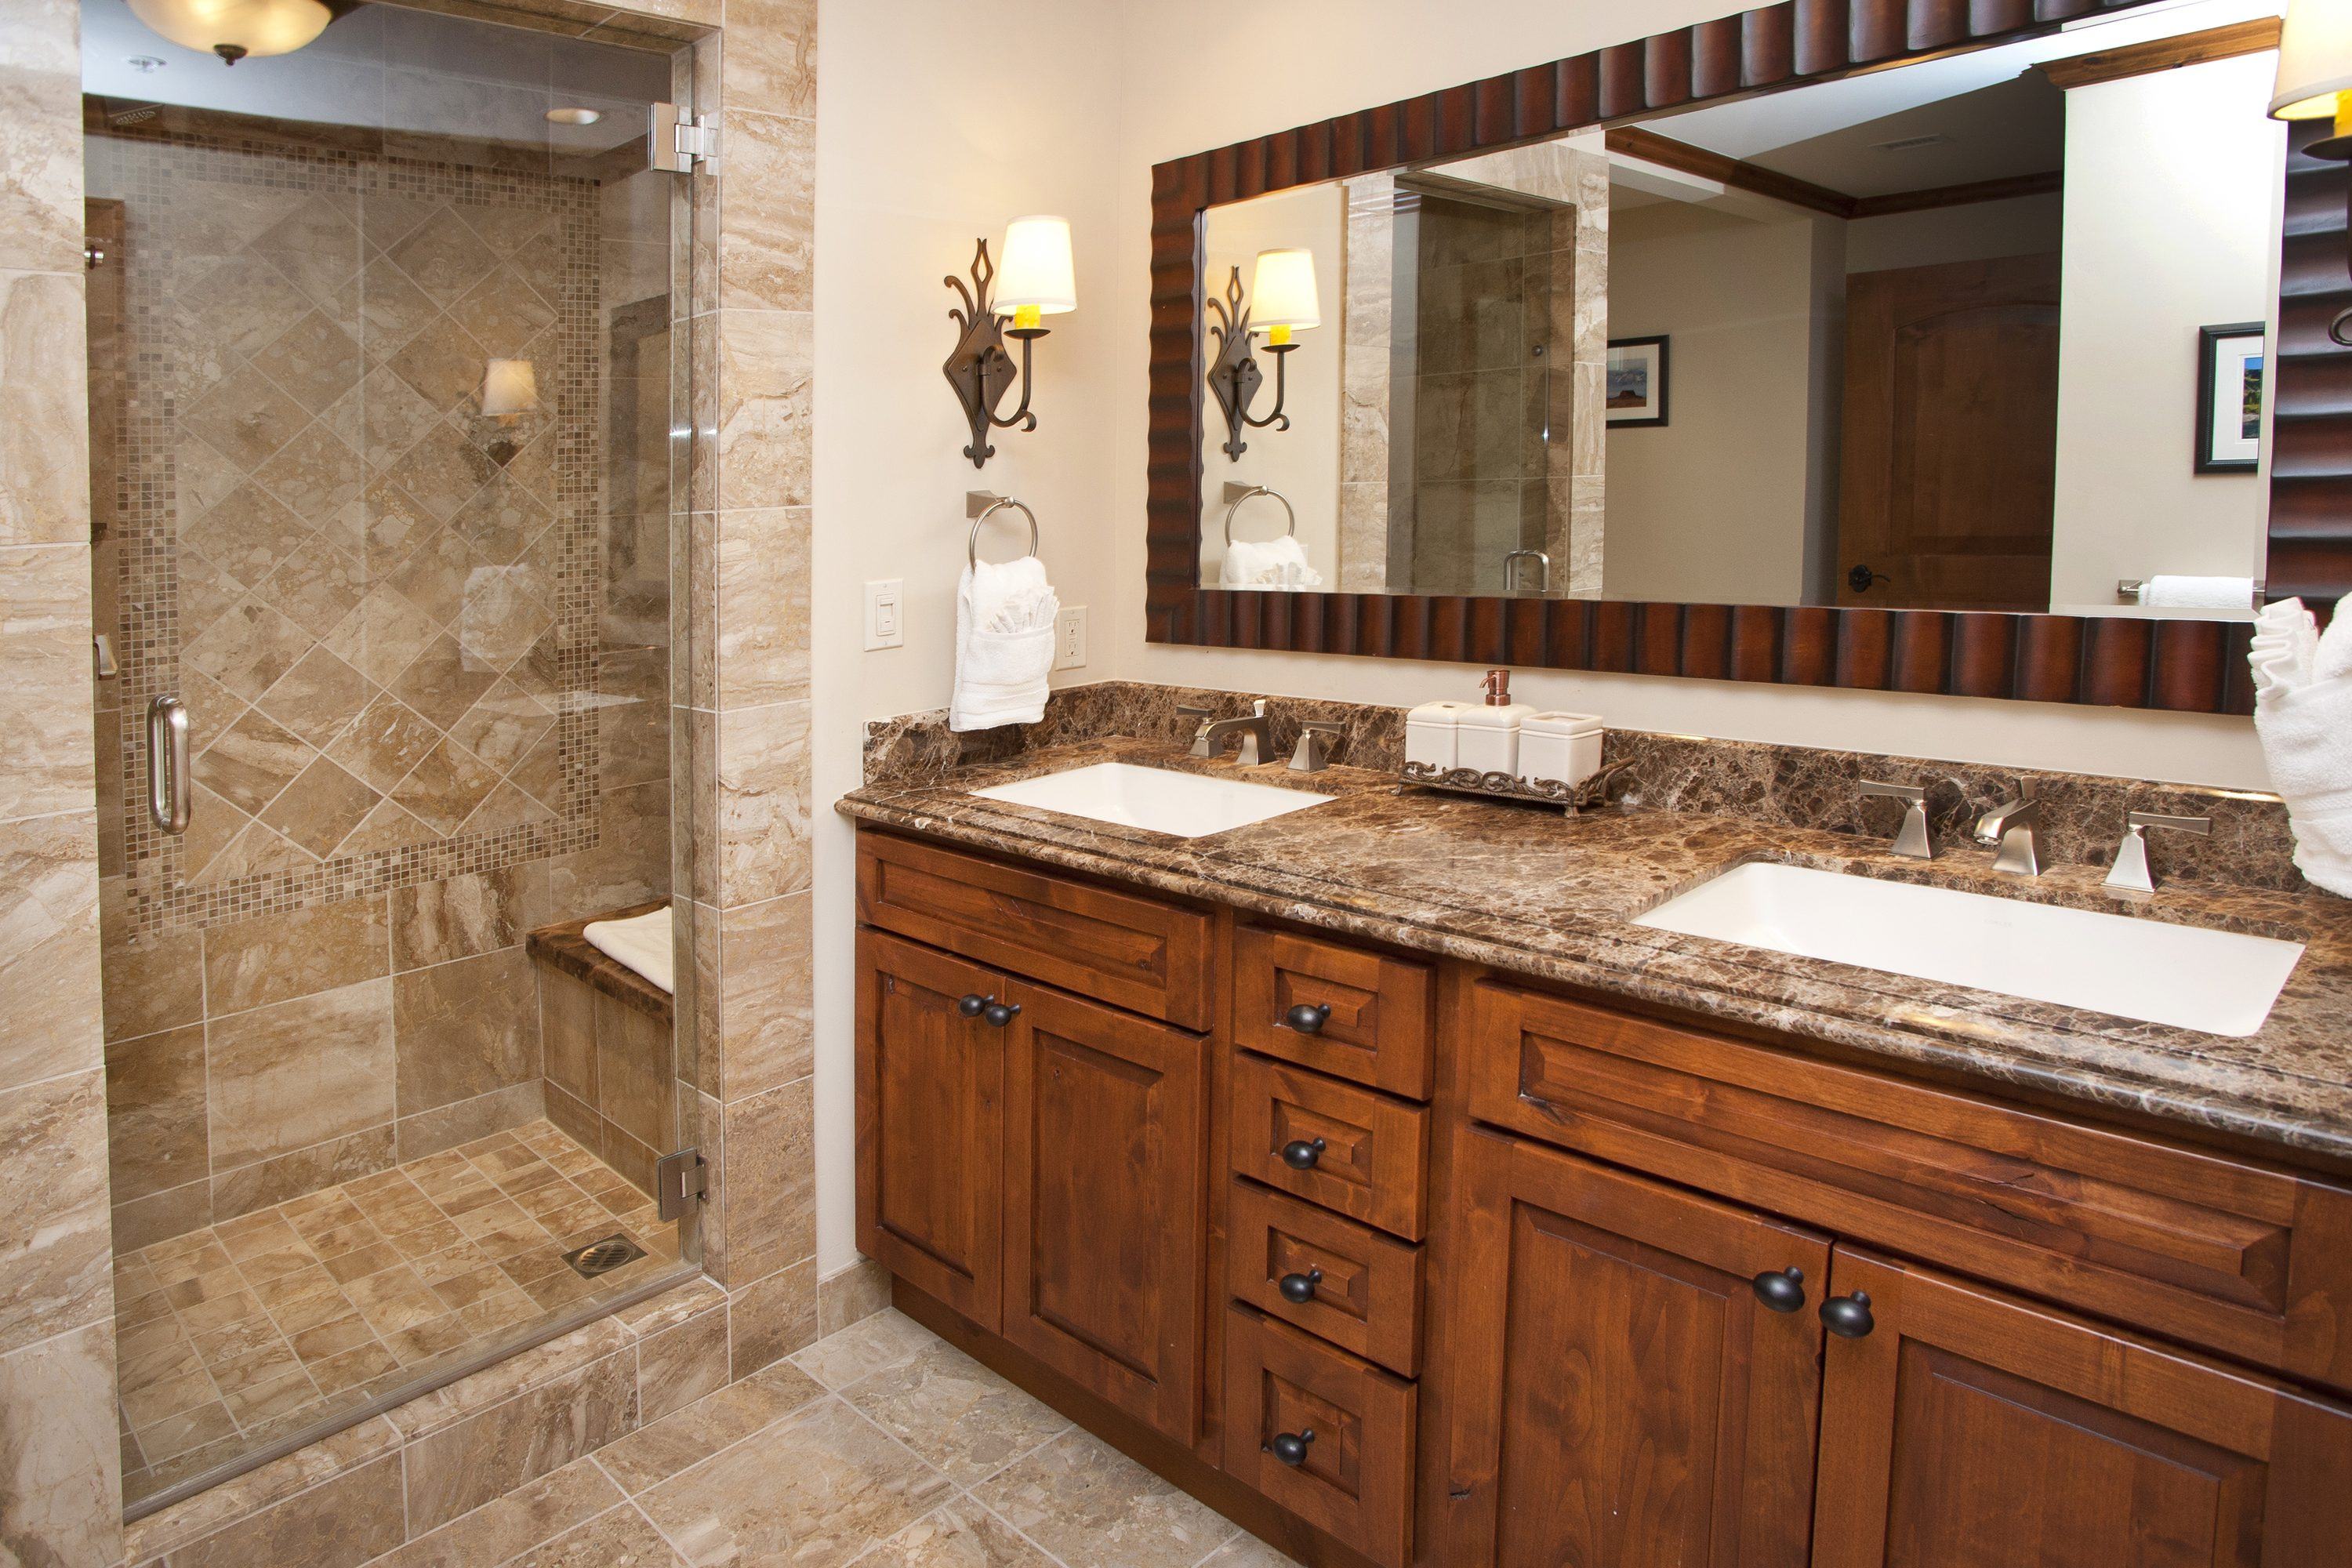 Luxury spacious bathroom with his and her sinks.  Relax in the steam shower/tub